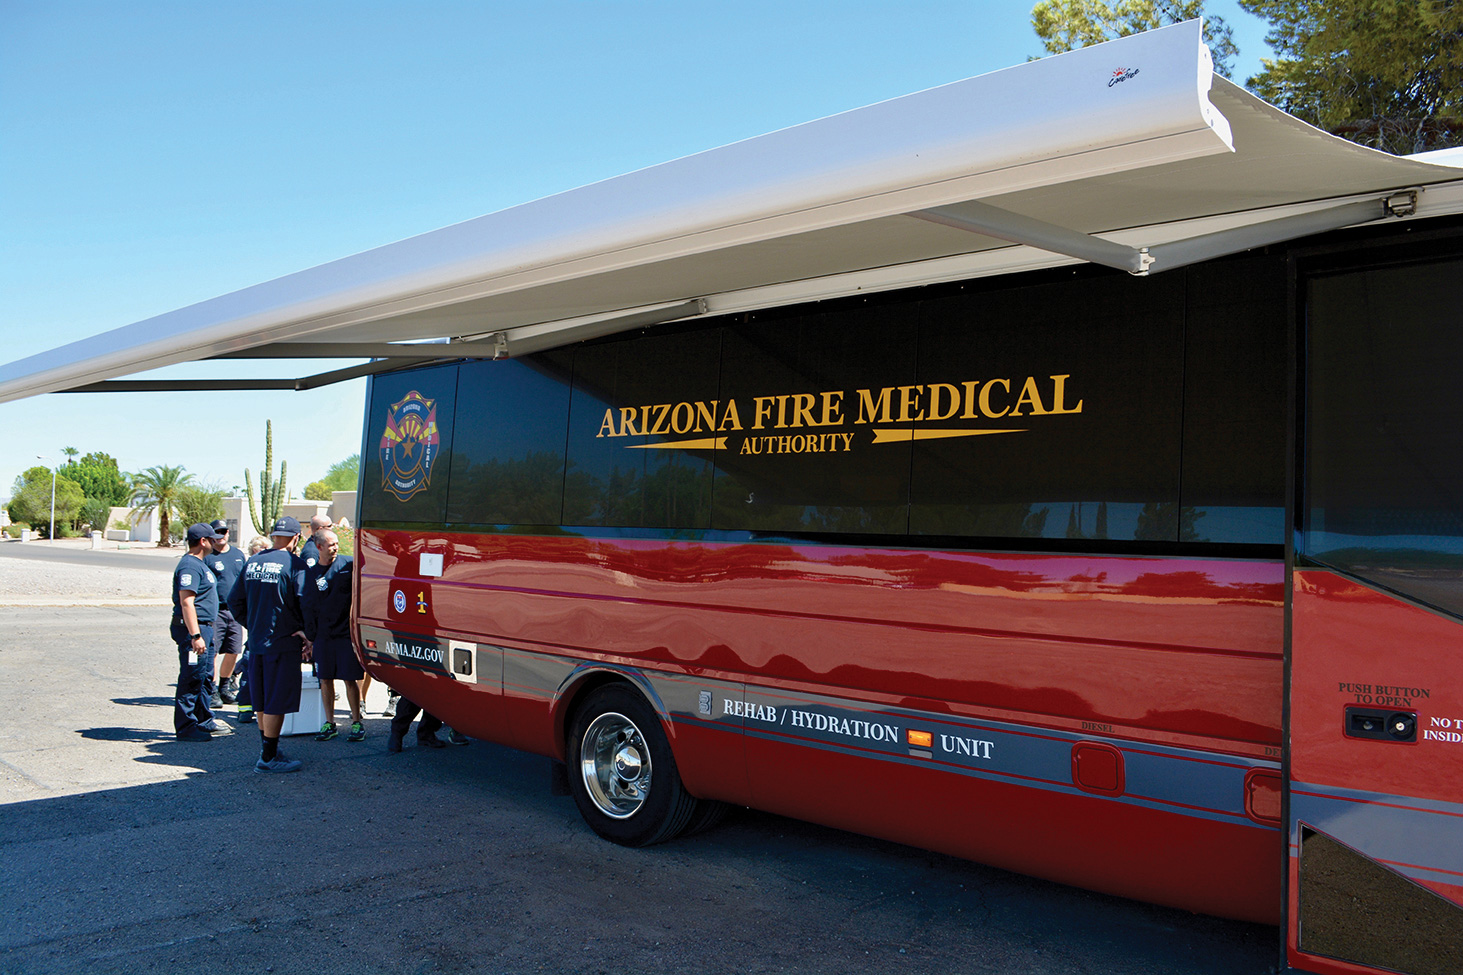 AFMA/Sun Lakes firefighters familiarize themselves with the new rehabilitation and rehydration unit in front of Station 231 on Sun Lakes Boulevard. (Photo by Brian Curry)